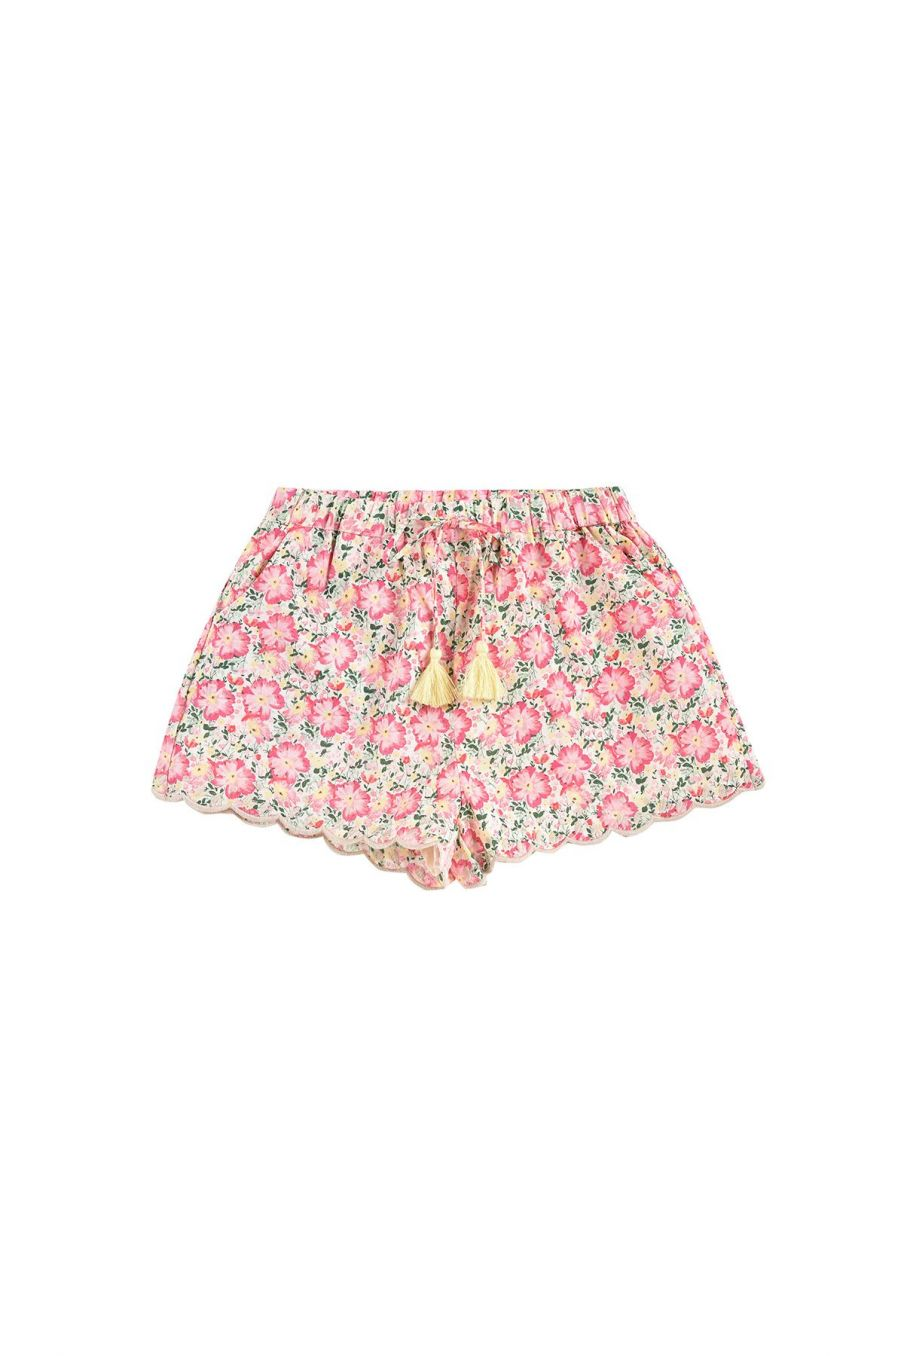 boheme chic vintage short fille vallaloid pink meadow